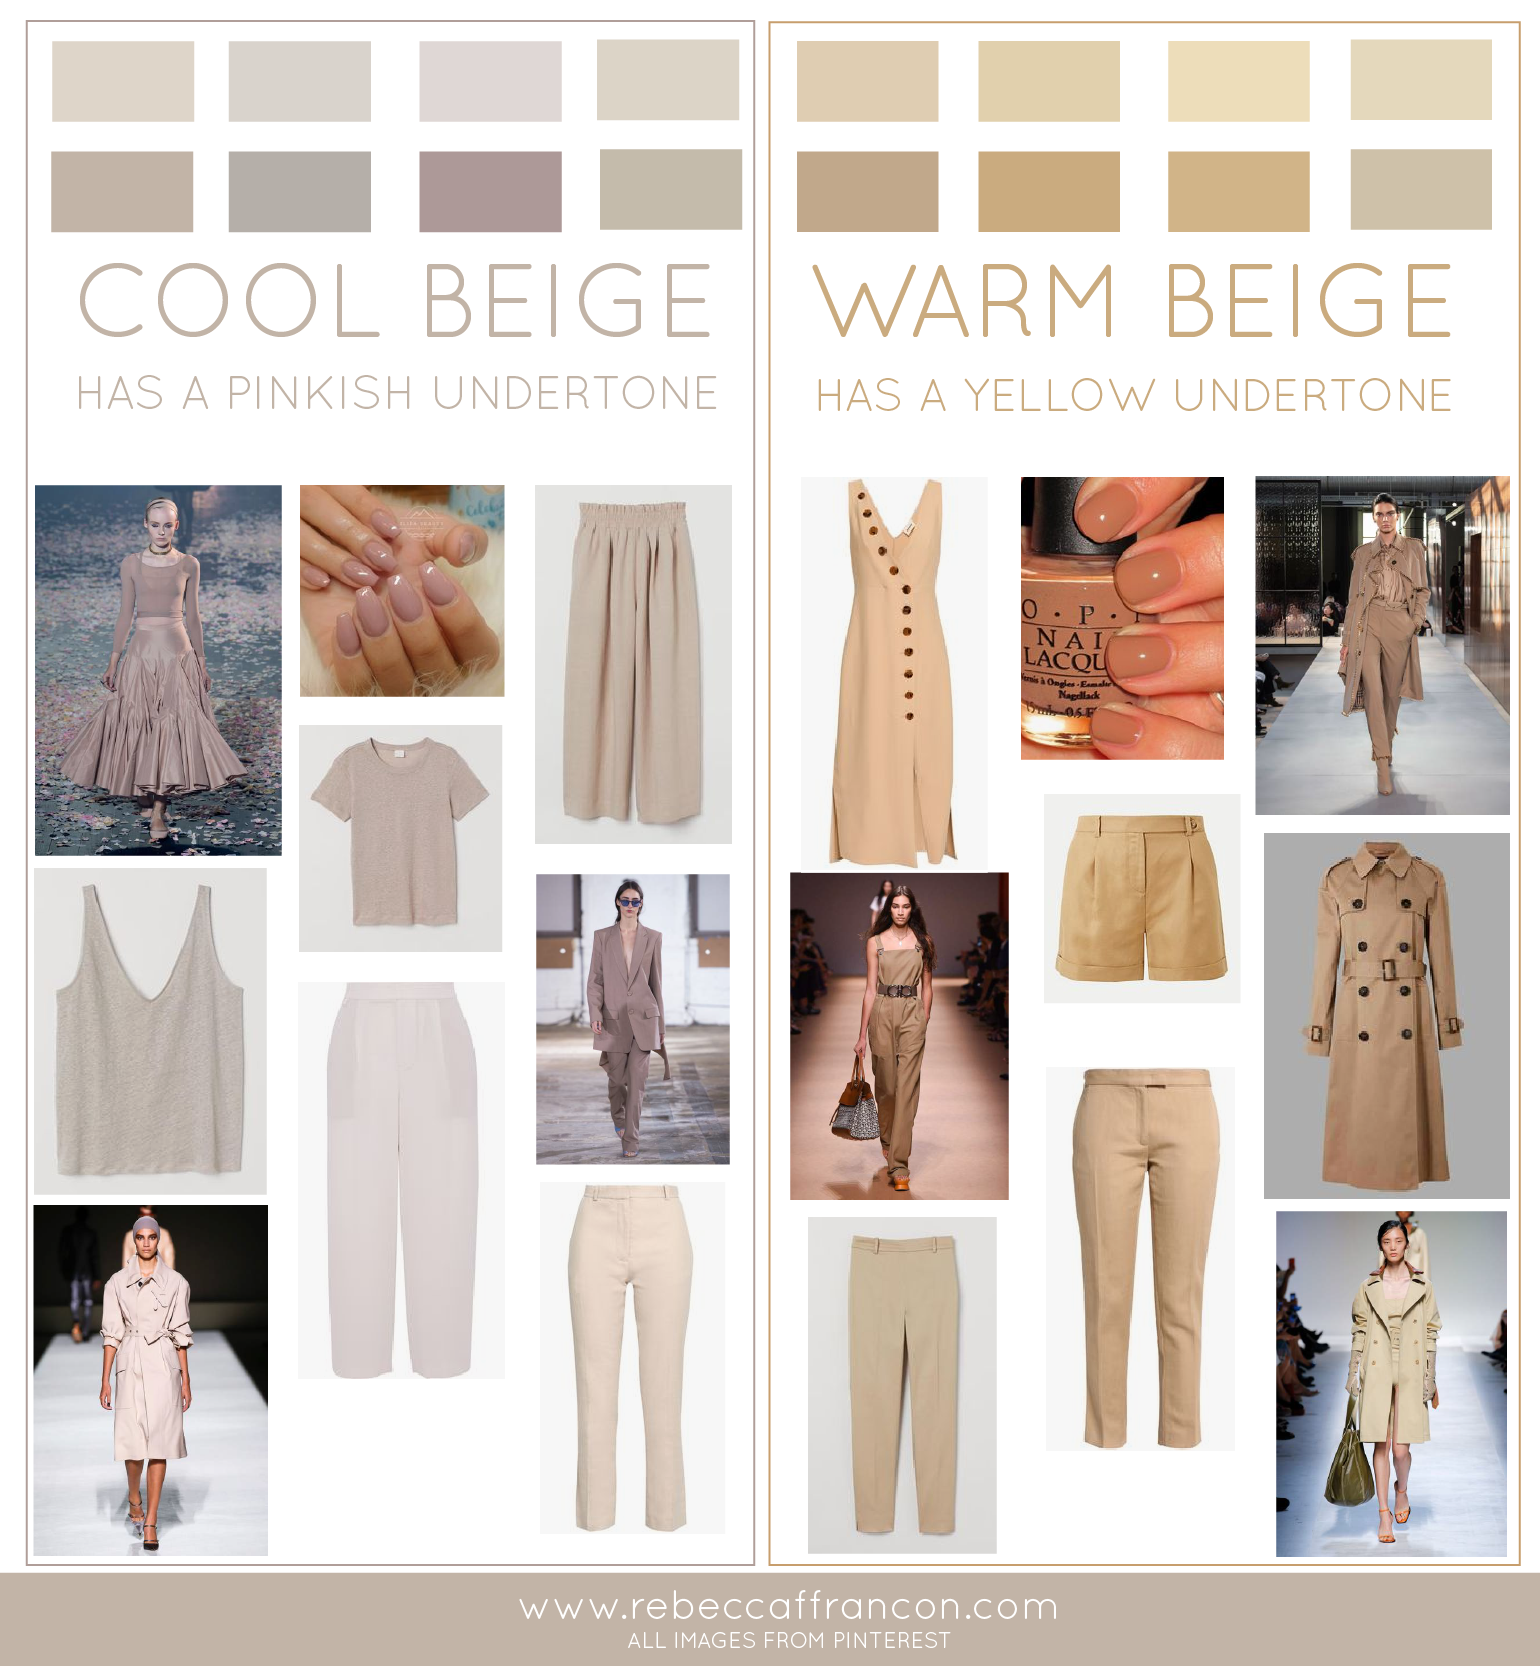 COOL OR WARM BEIGE